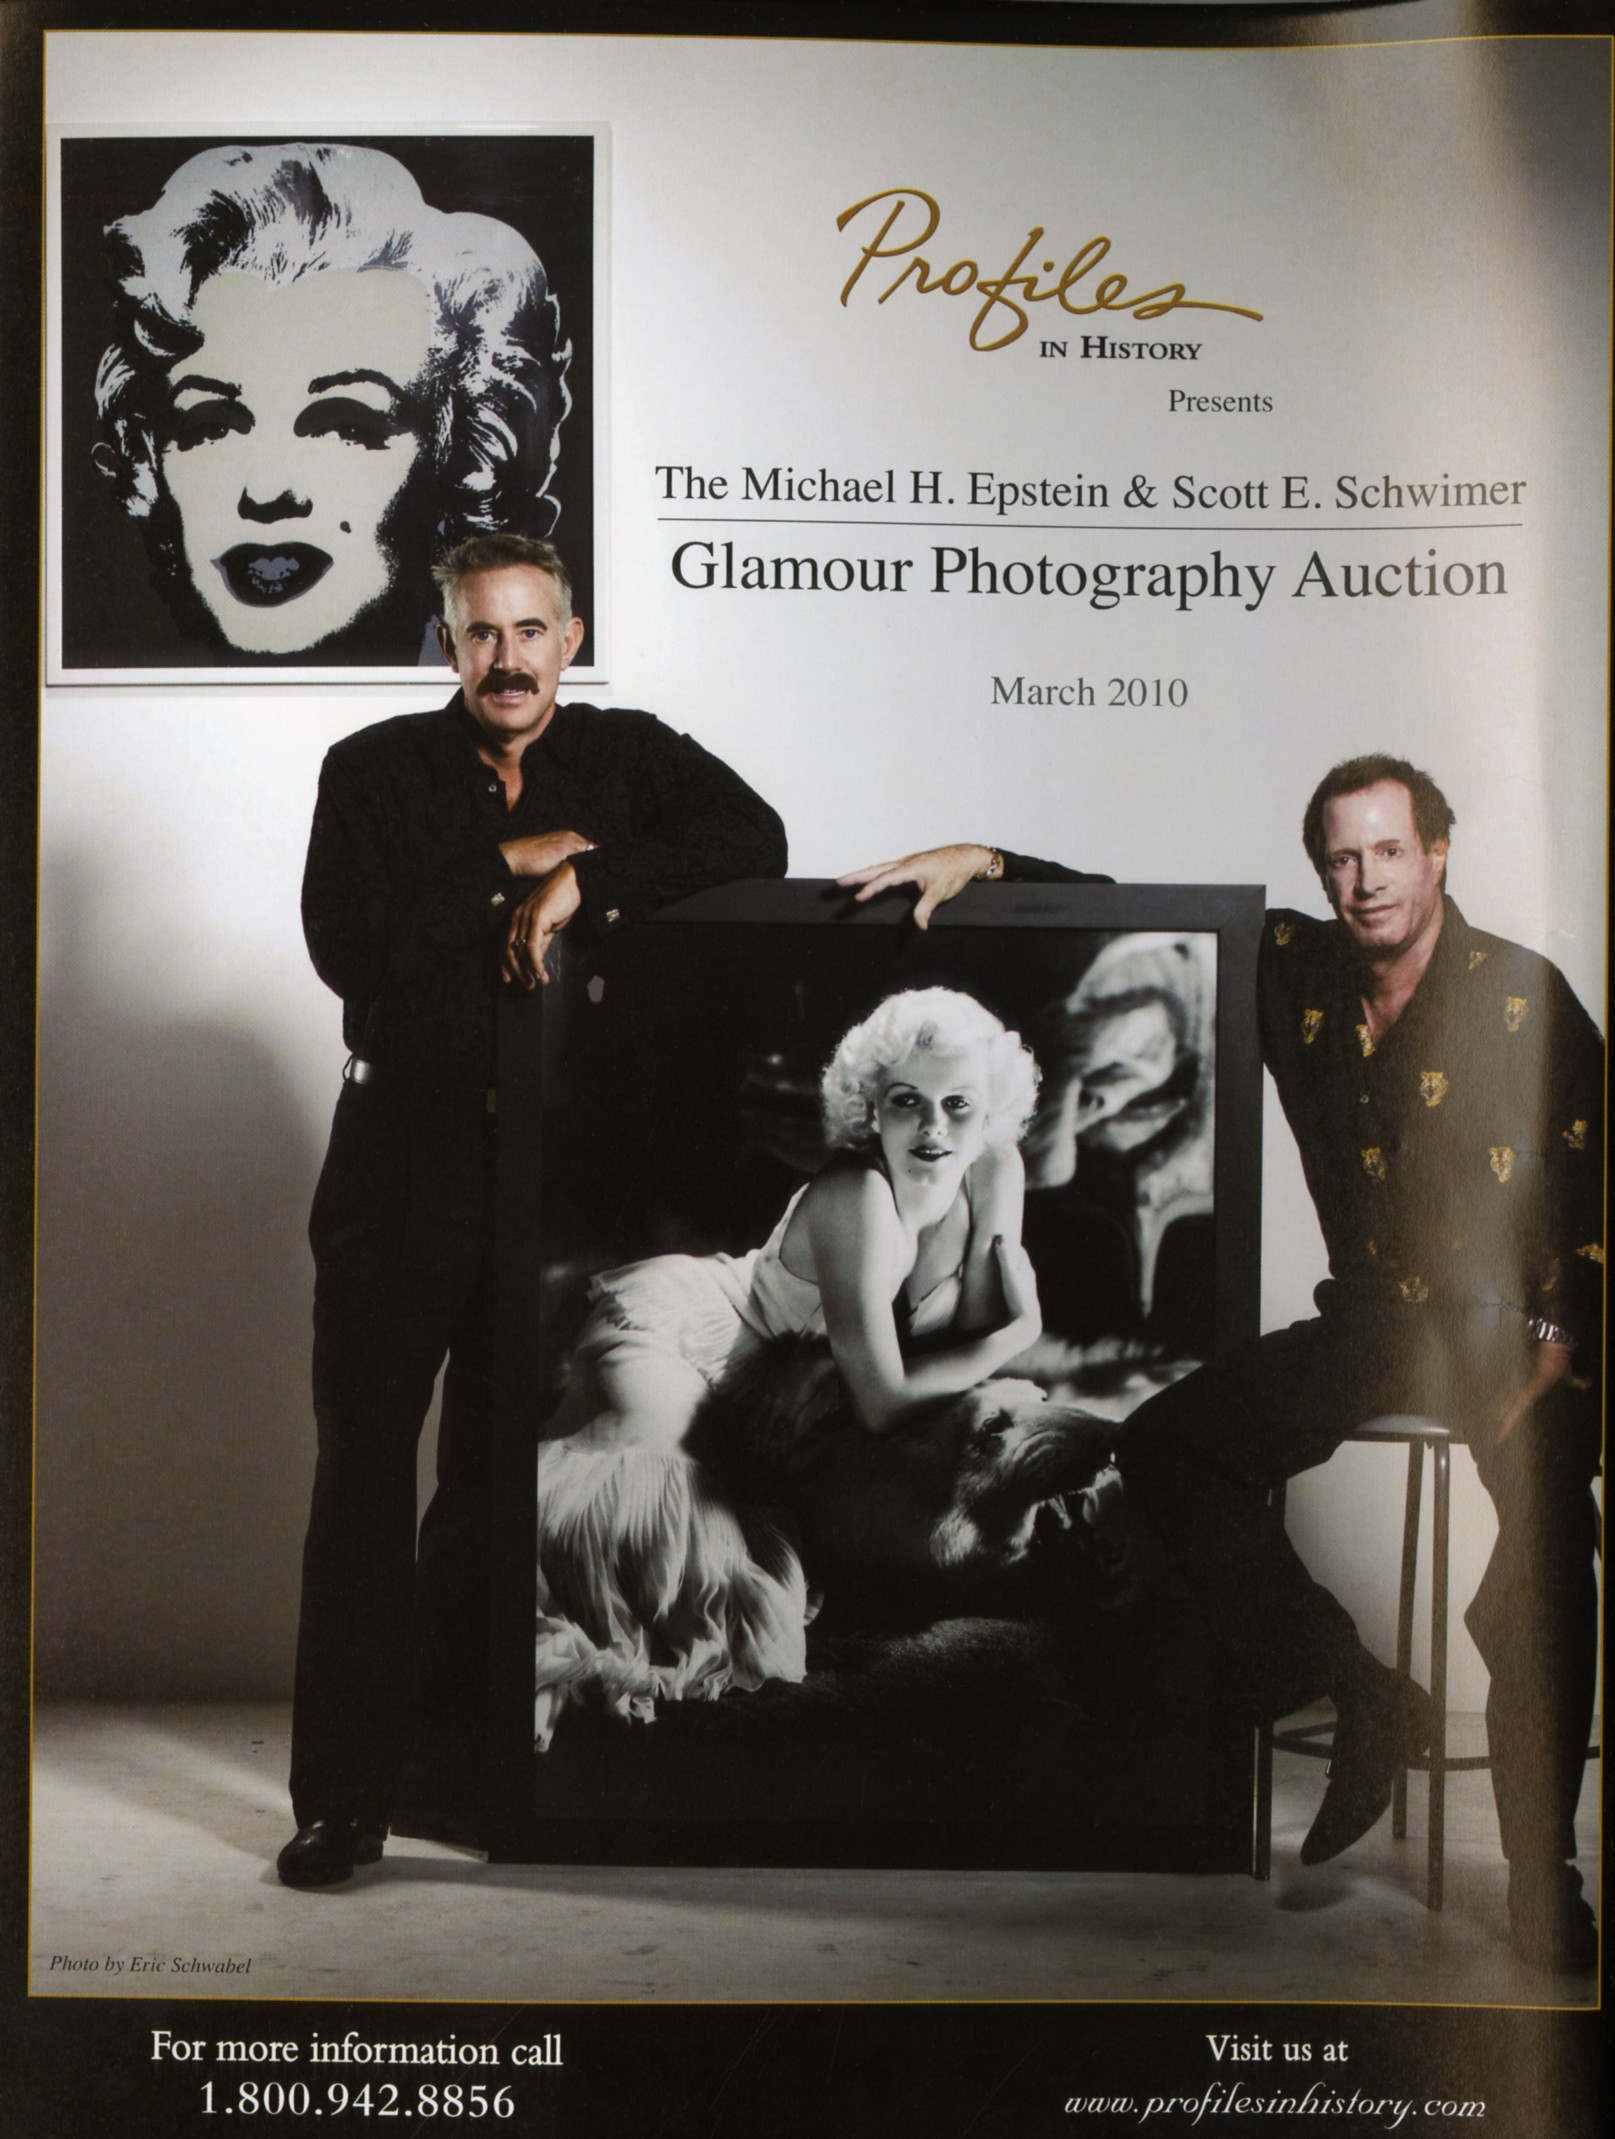 magazine snipit with profiles in history. photo of michael h epstein and scott e schwimer holding up a marilyn monroe photo